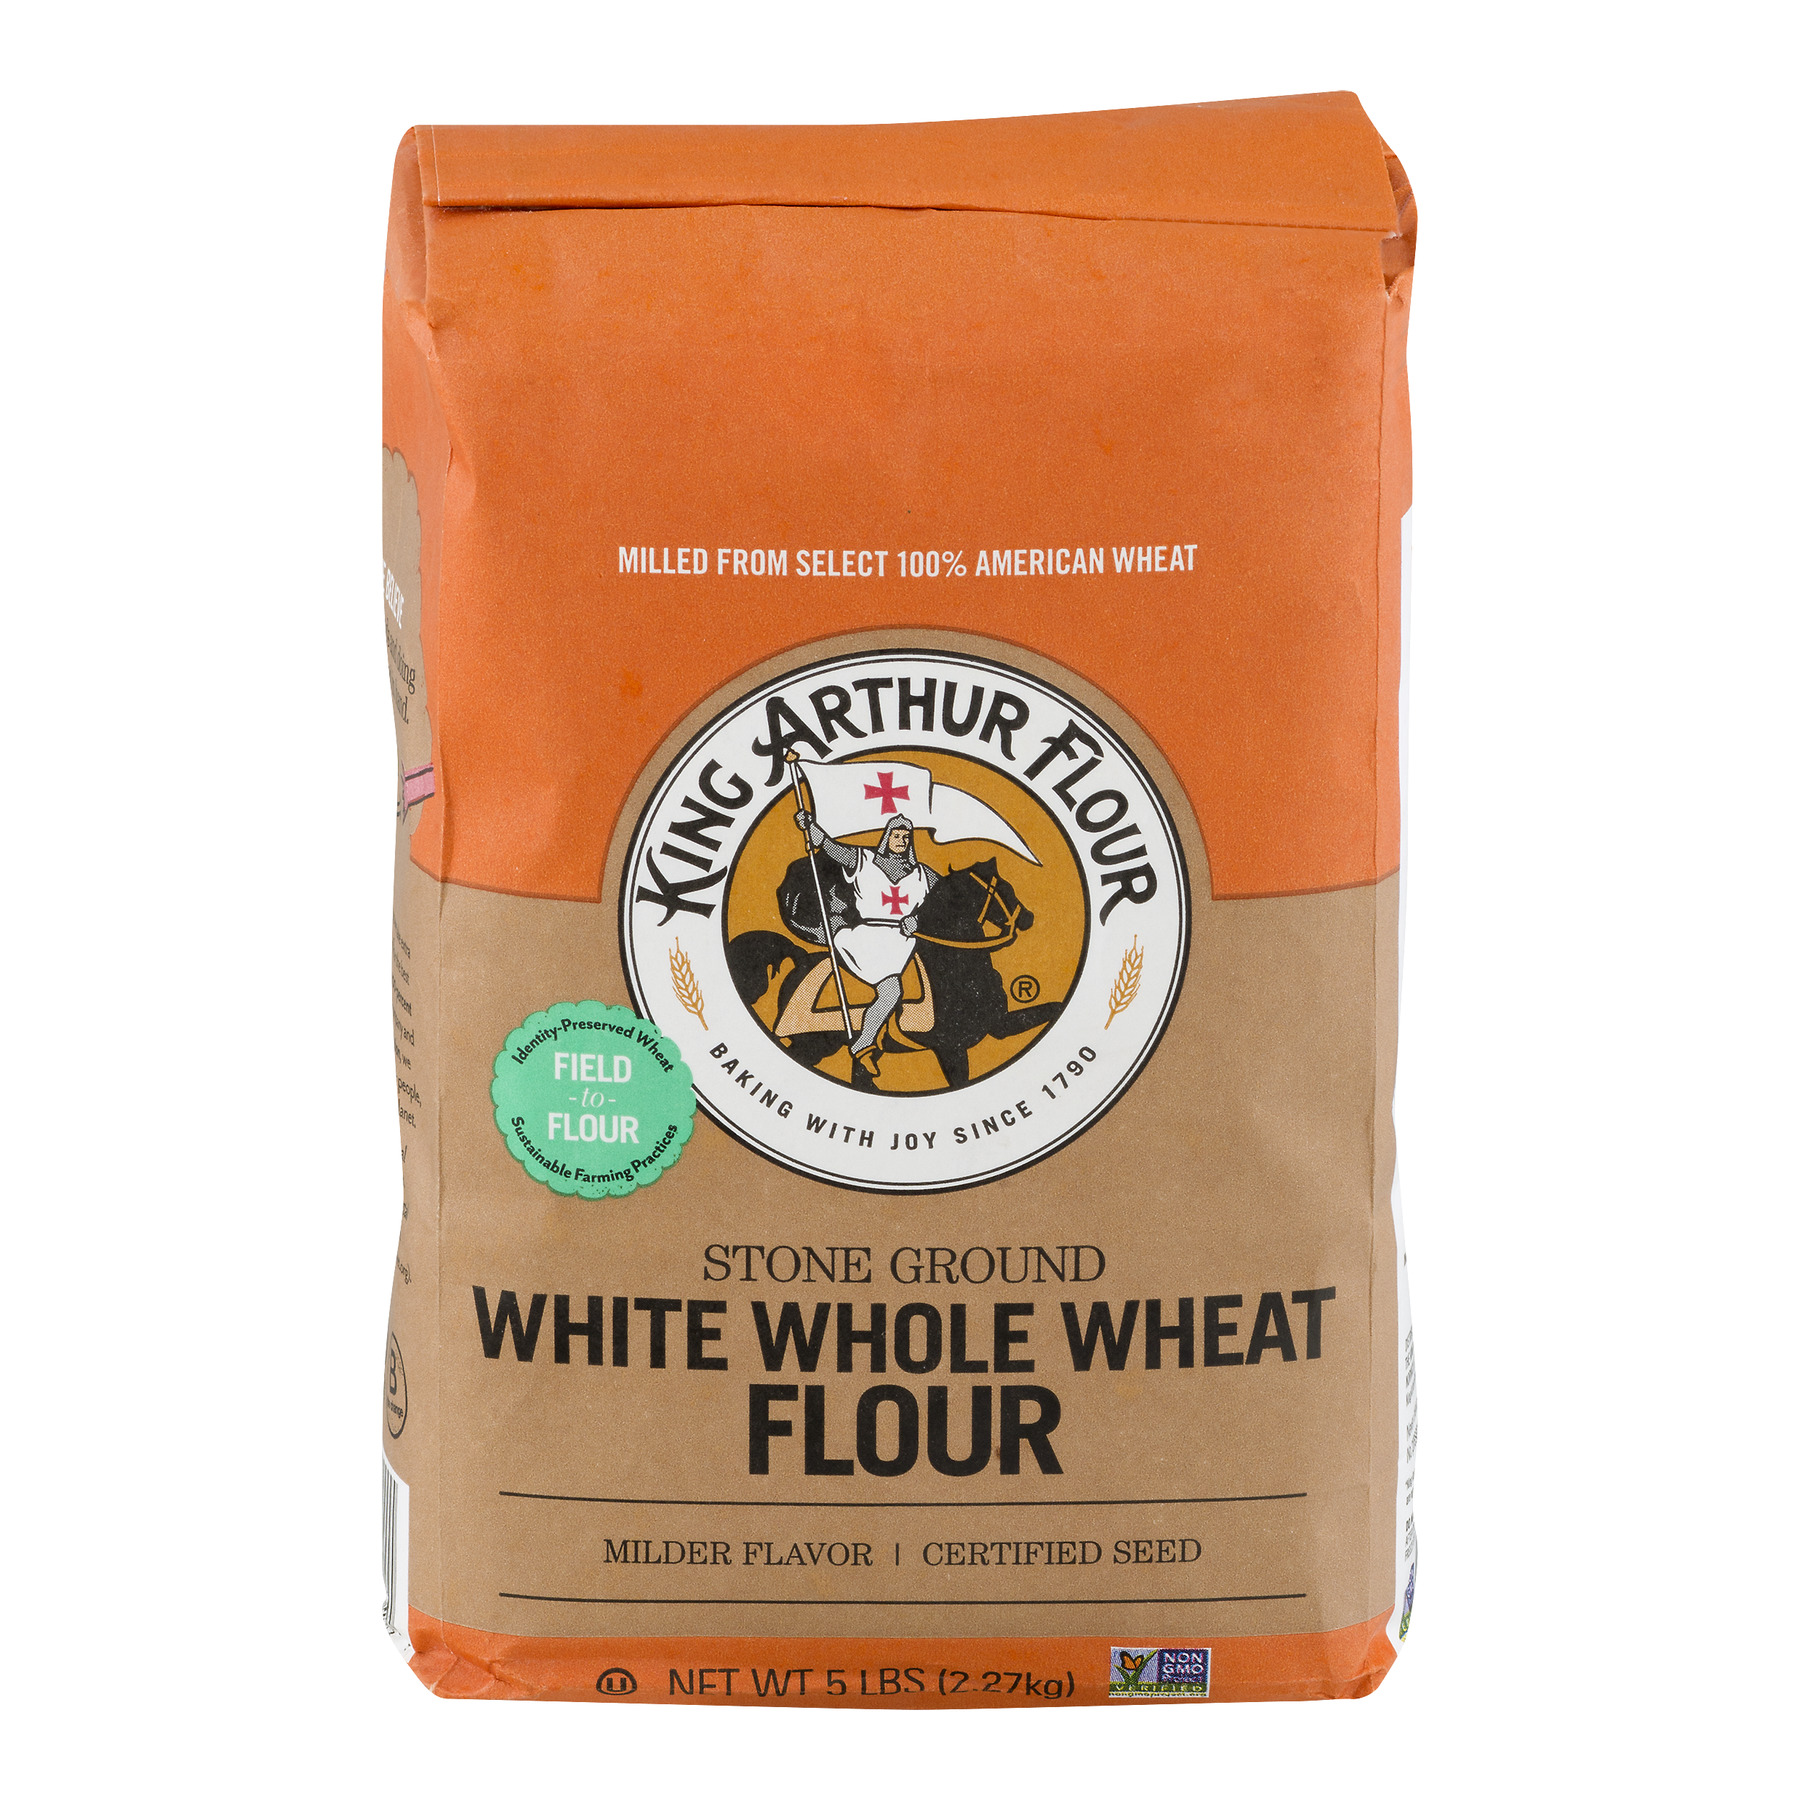 King Arthur Flour White Whole Wheat Flour 5 lb. Bag